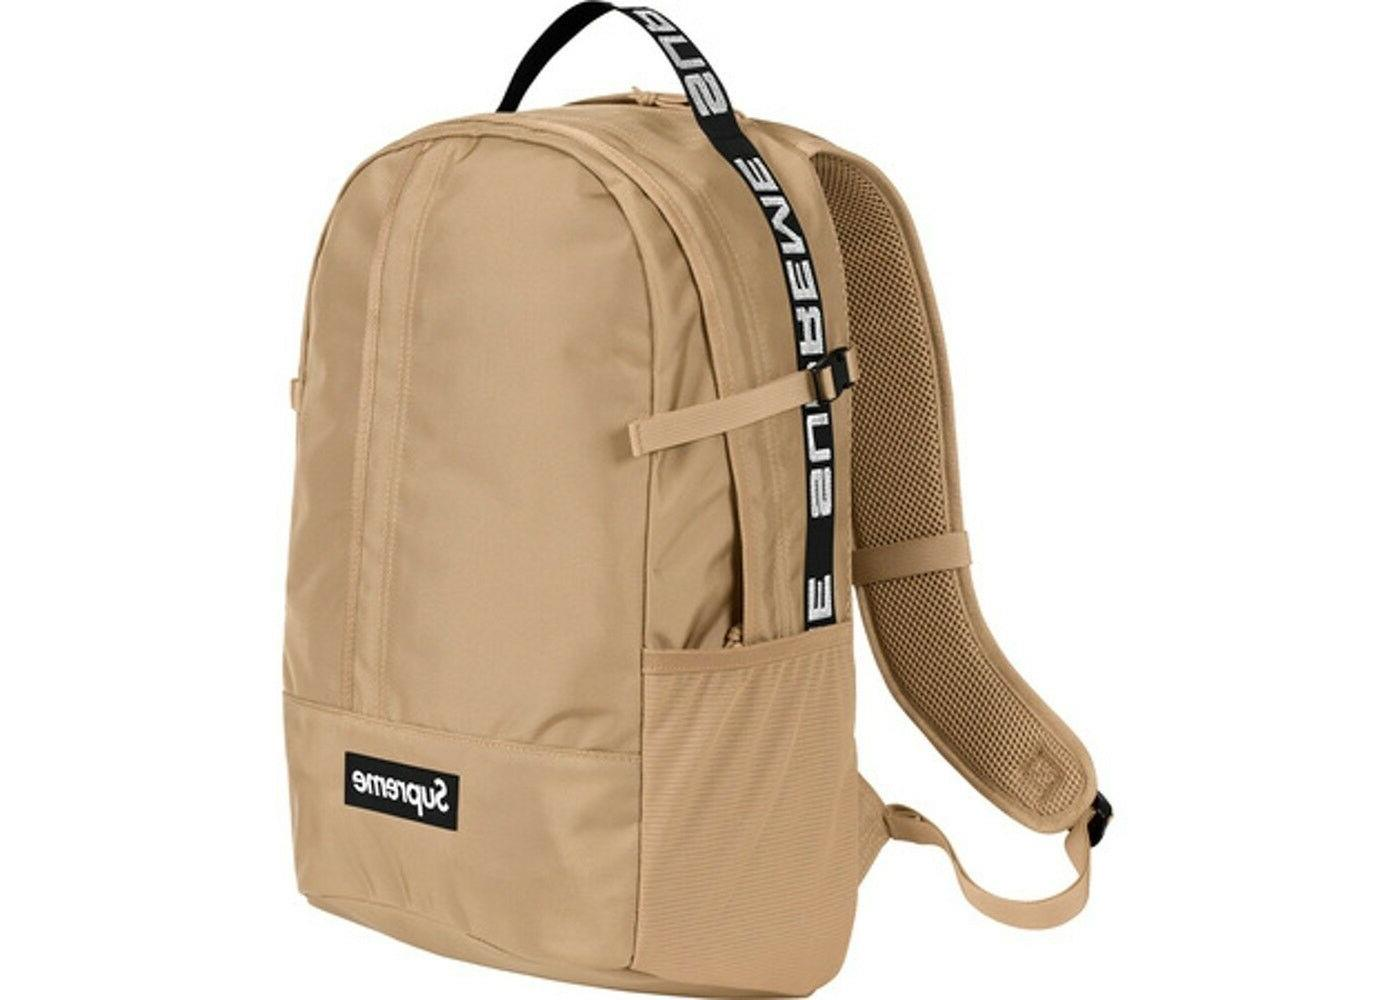 ss18 backpack authentic box logo school bag